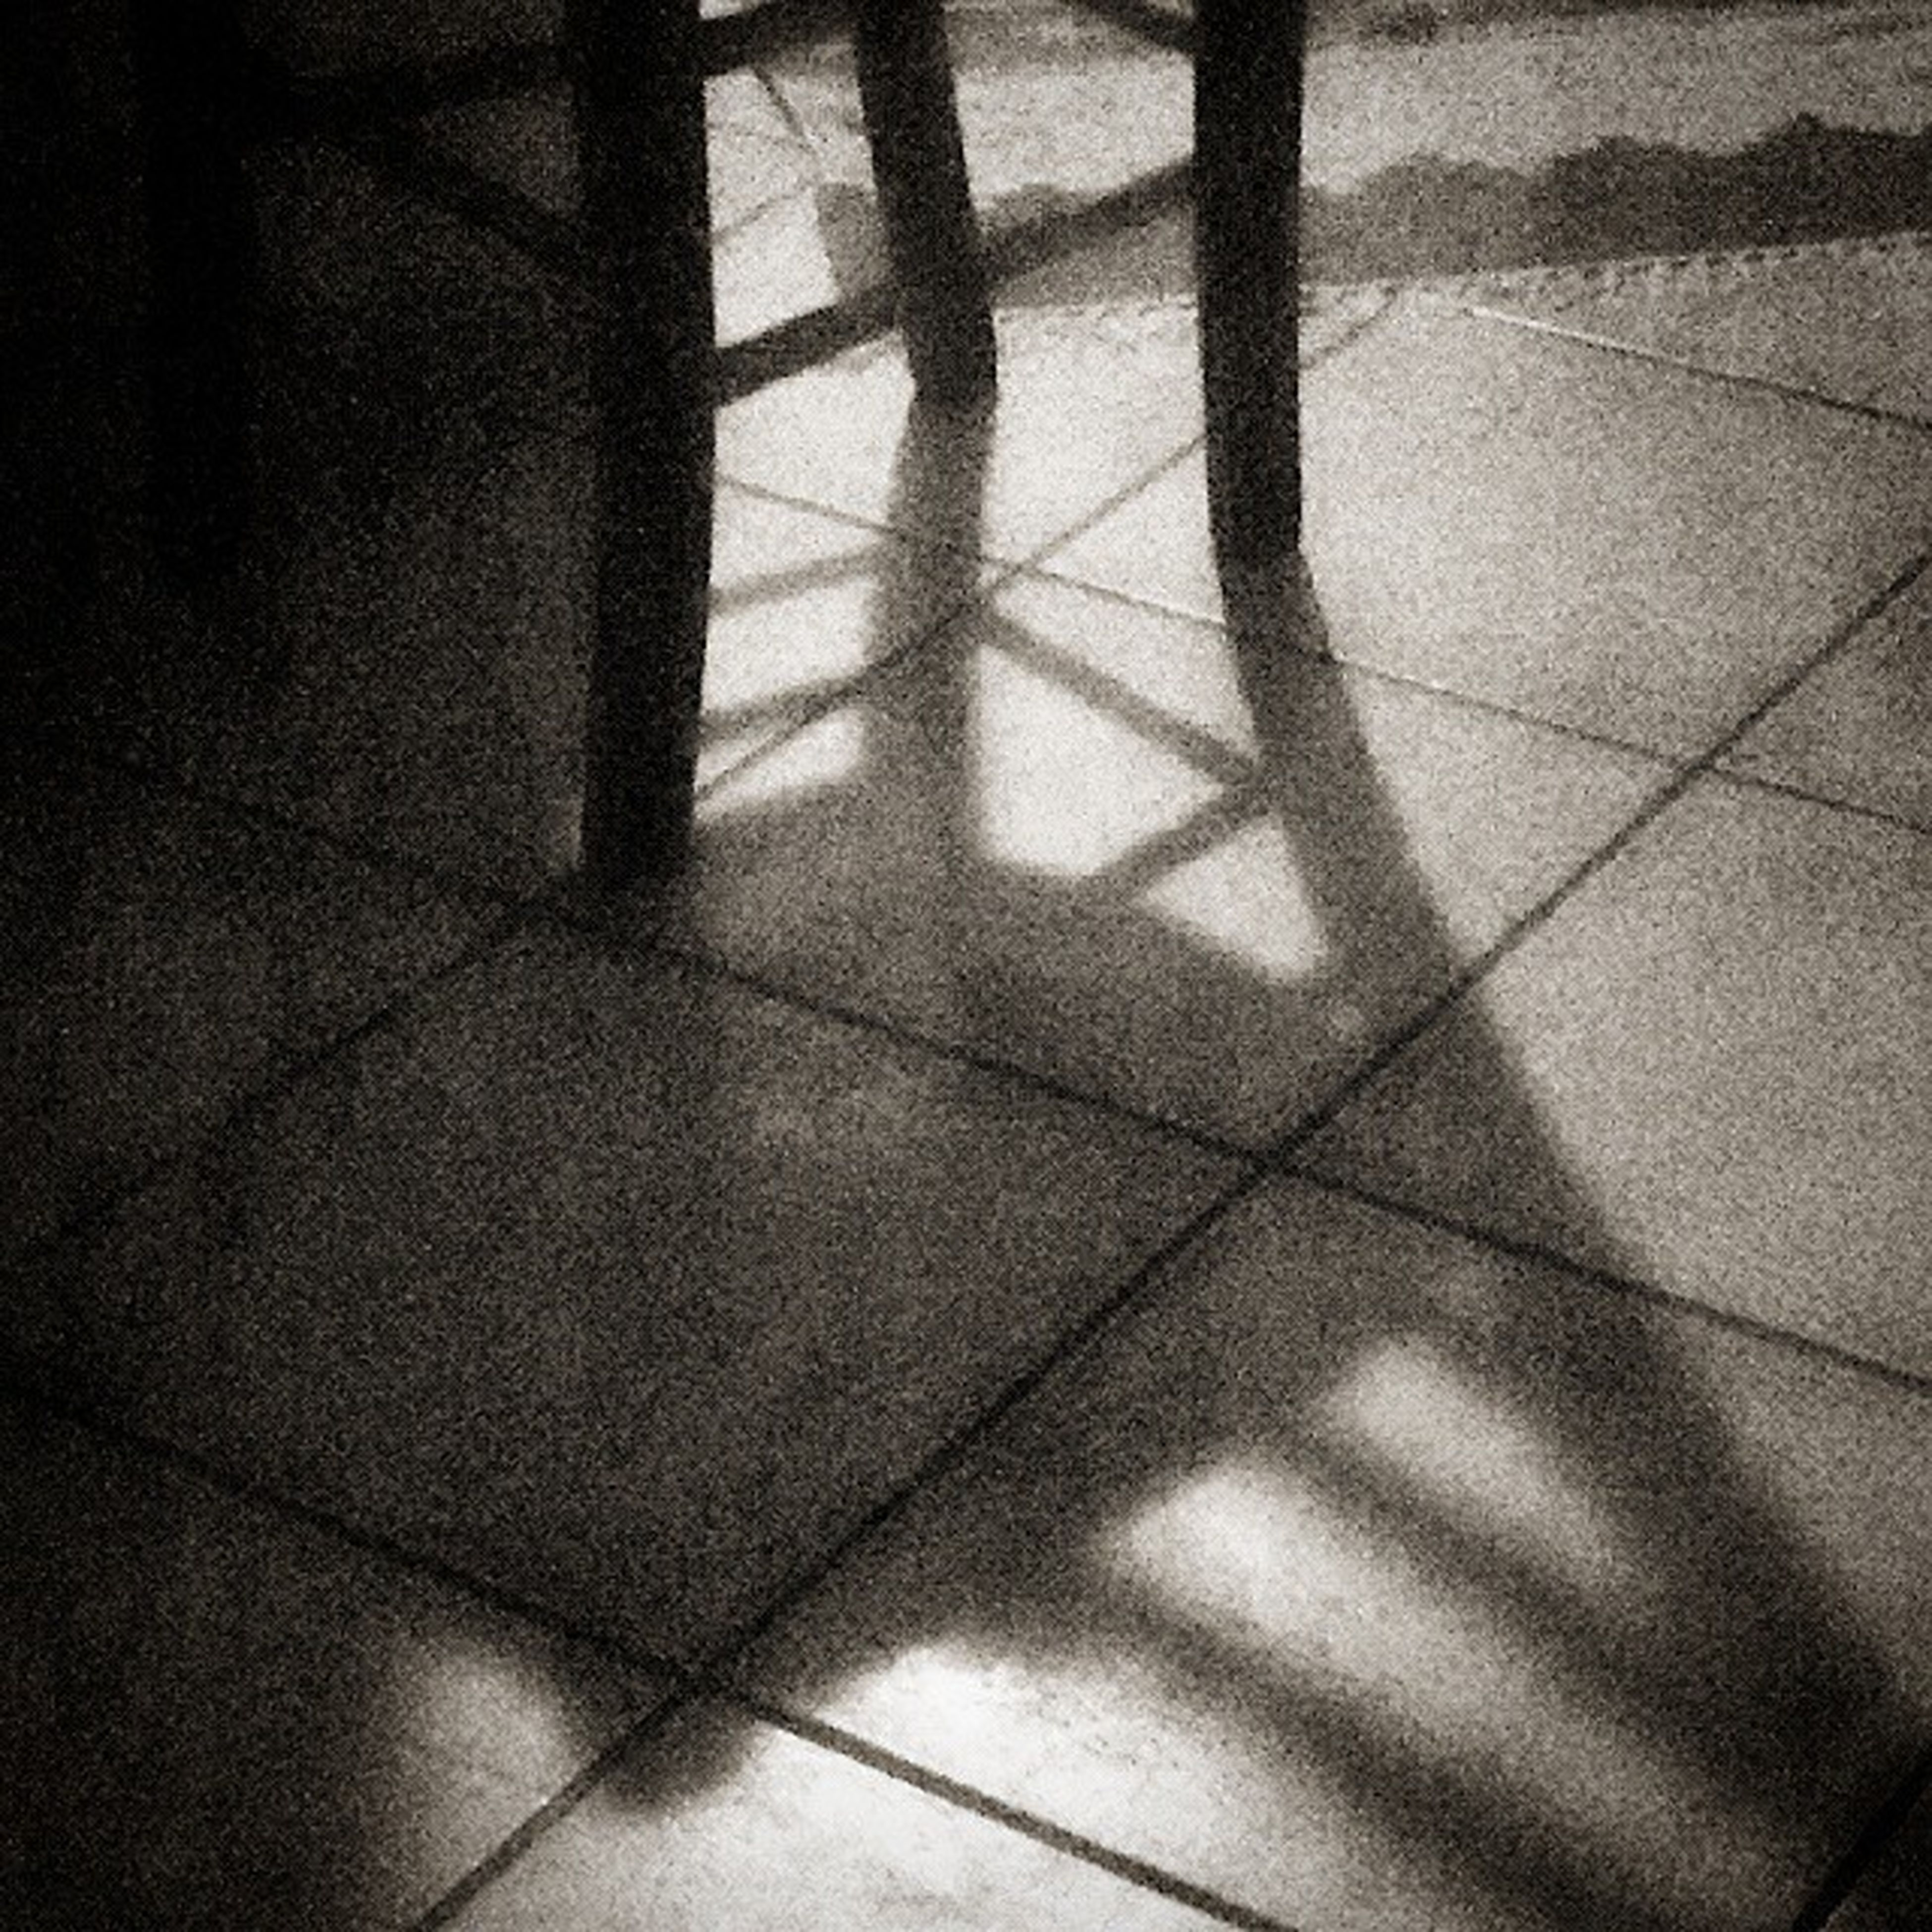 indoors, tiled floor, flooring, shadow, tile, high angle view, wall - building feature, pattern, floor, sunlight, home interior, empty, absence, no people, wall, day, geometric shape, close-up, paving stone, auto post production filter